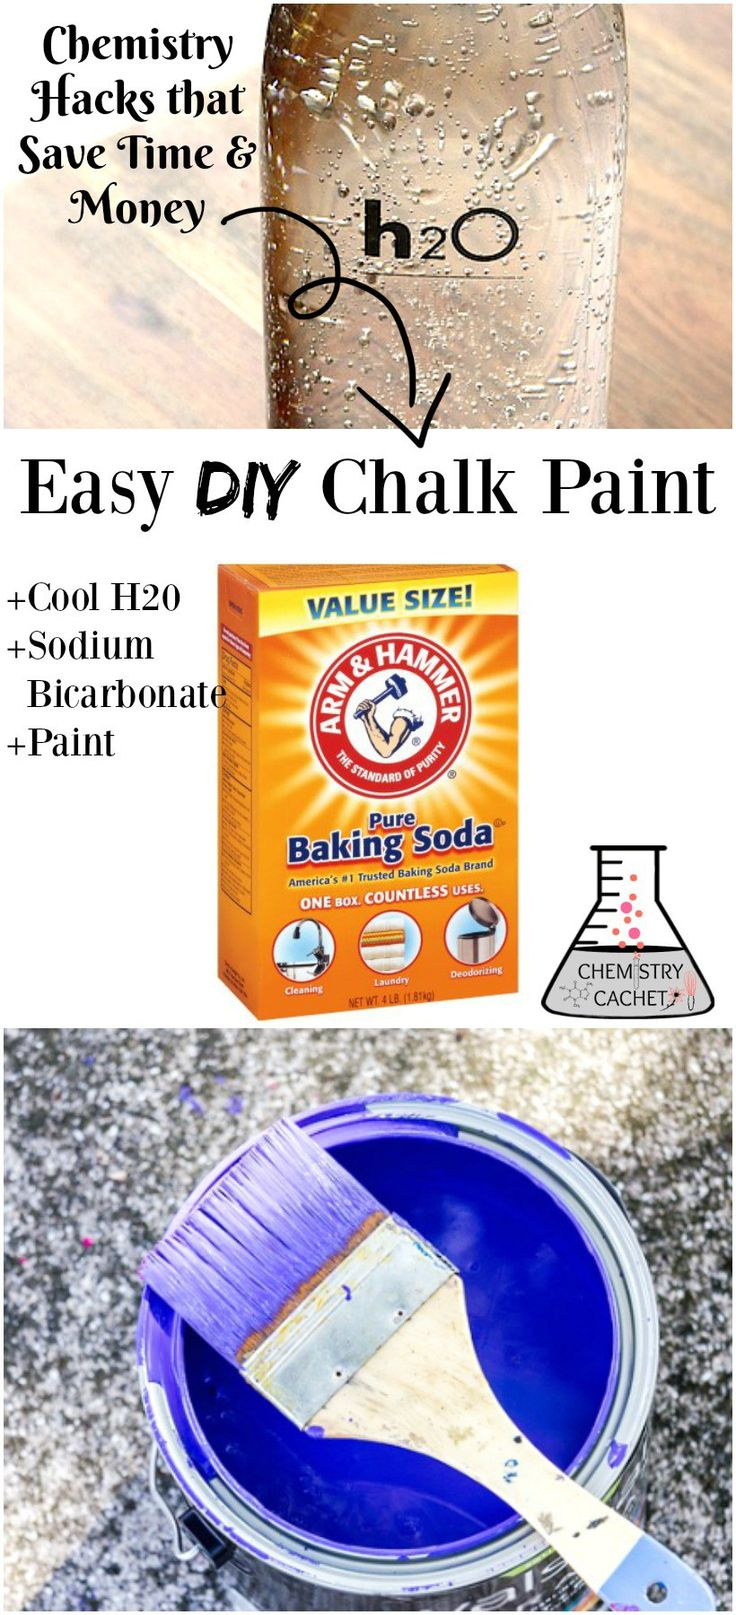 8 Mind-blowing Chemistry Tips that Save Time & Money...like making your own chalk paint the easy way on chemistrycachet.com